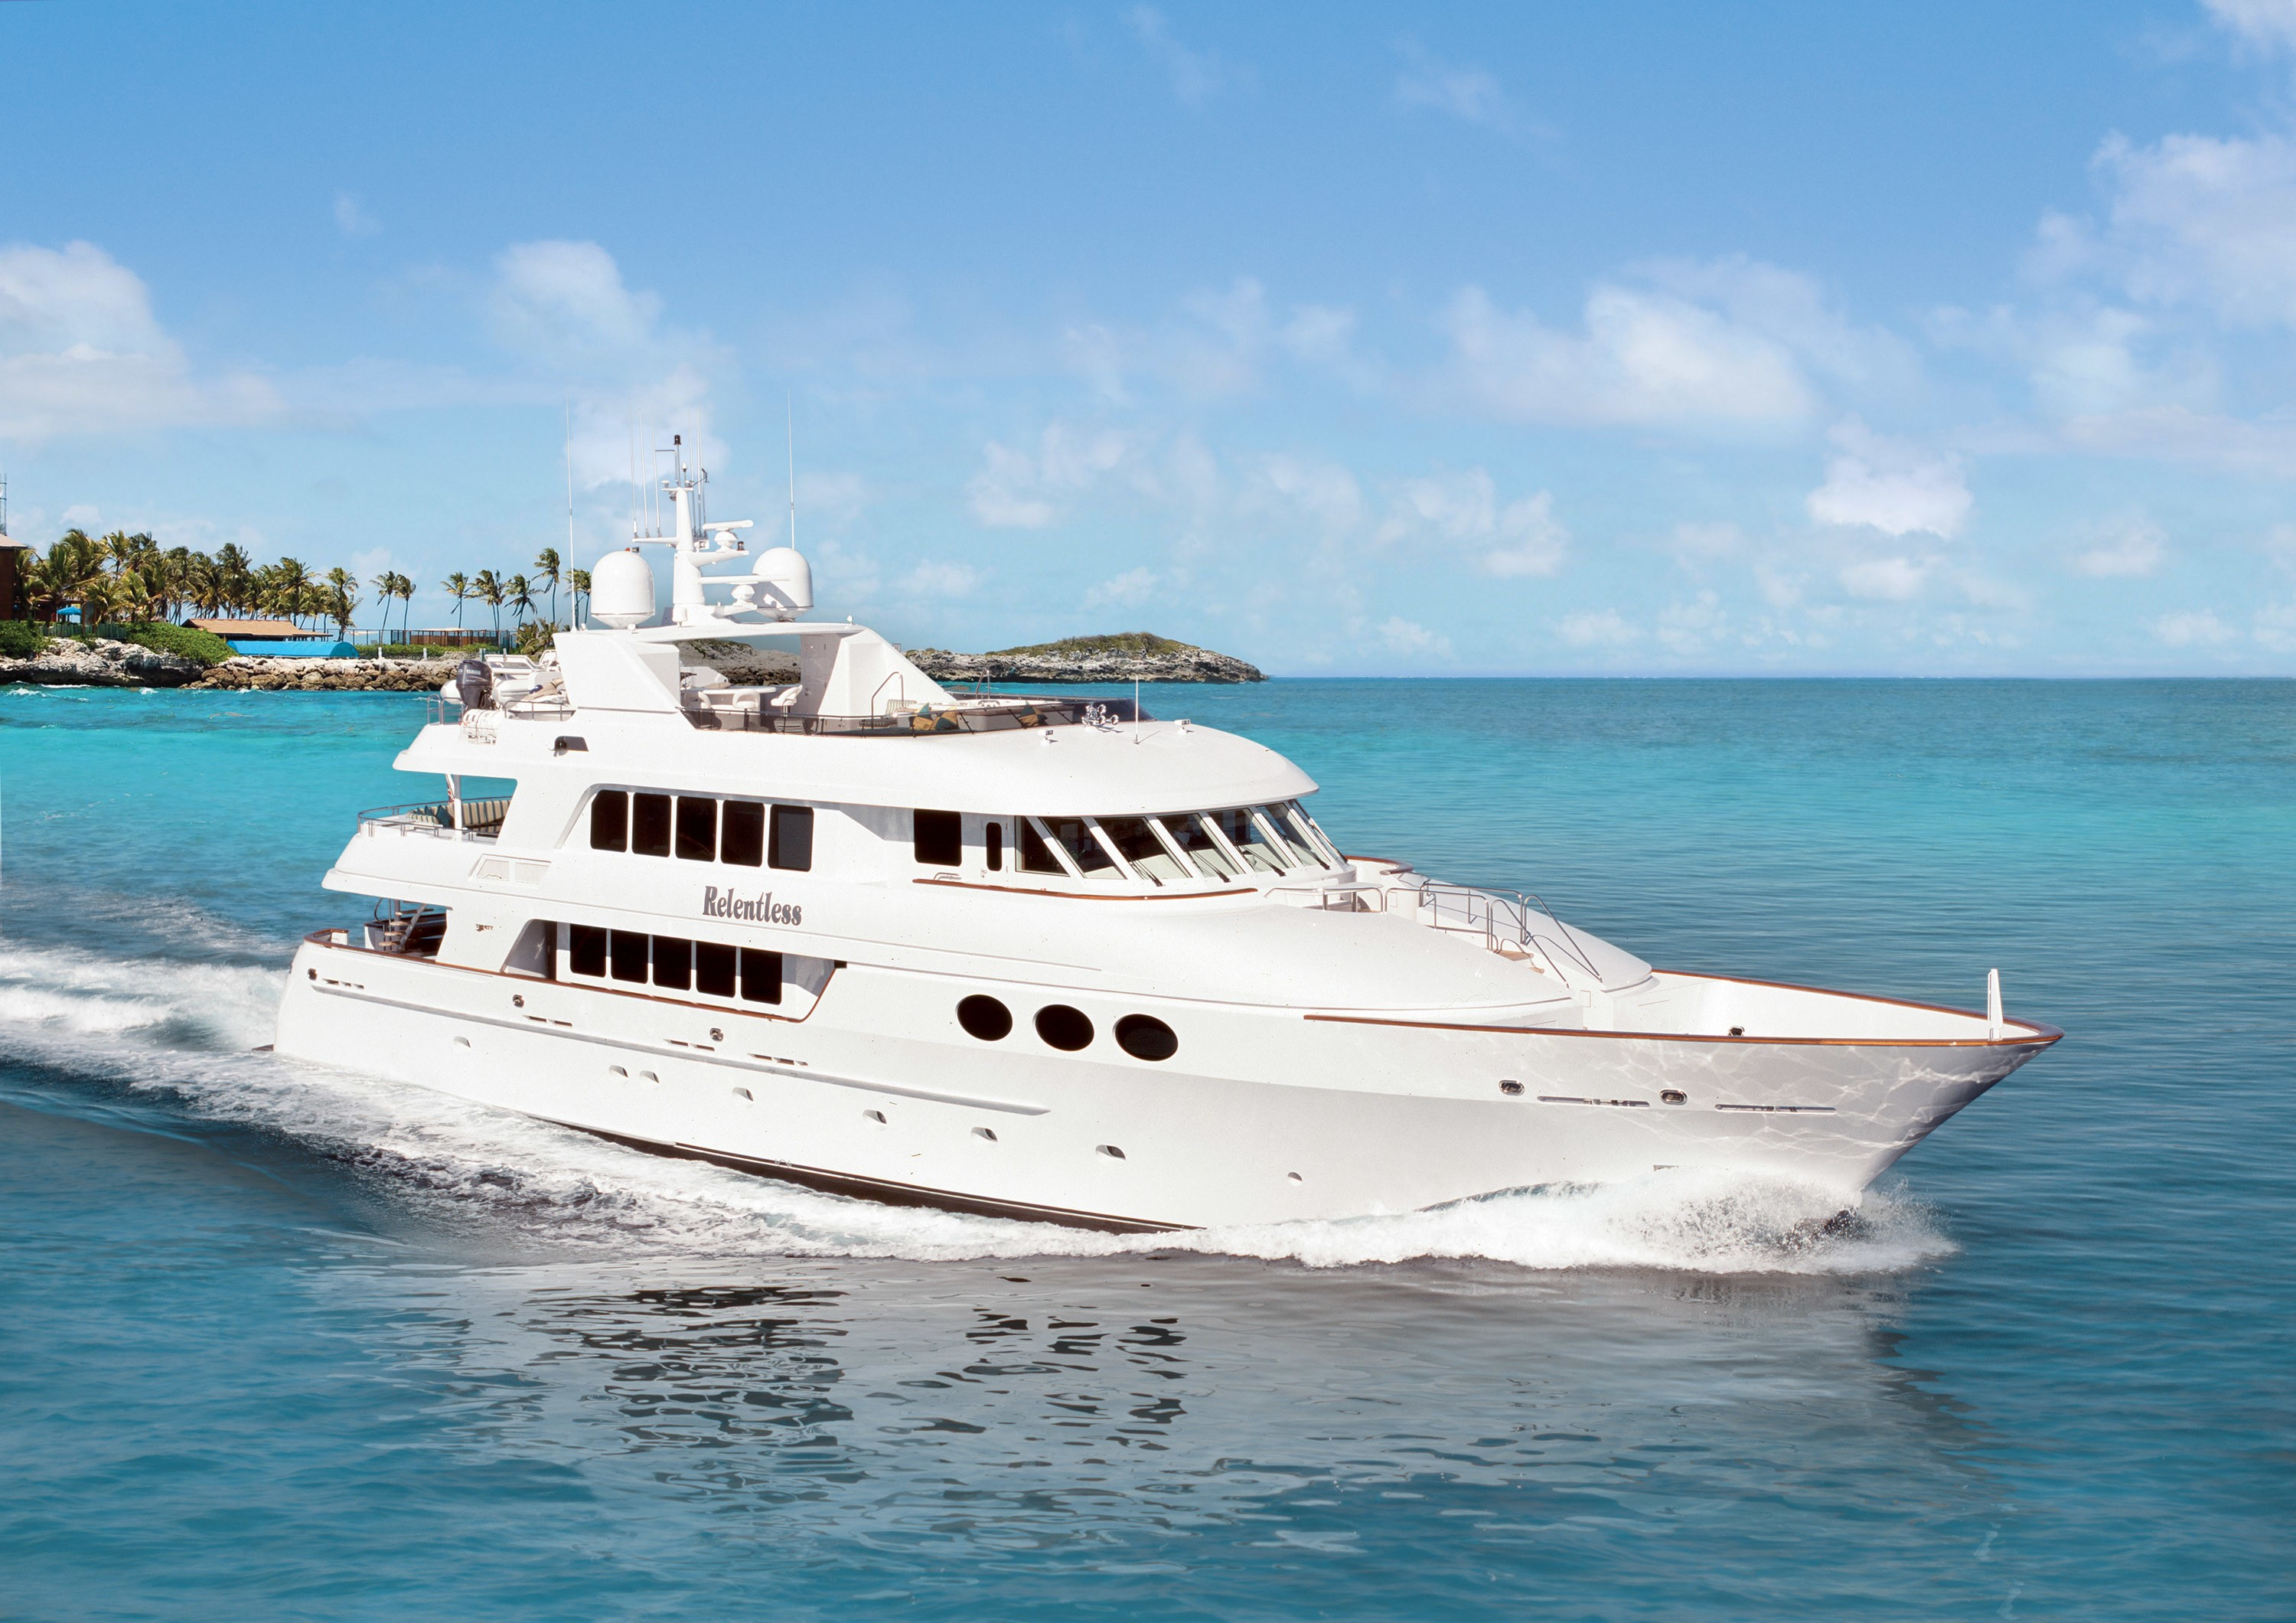 relentless yacht charter details  trinity yachts